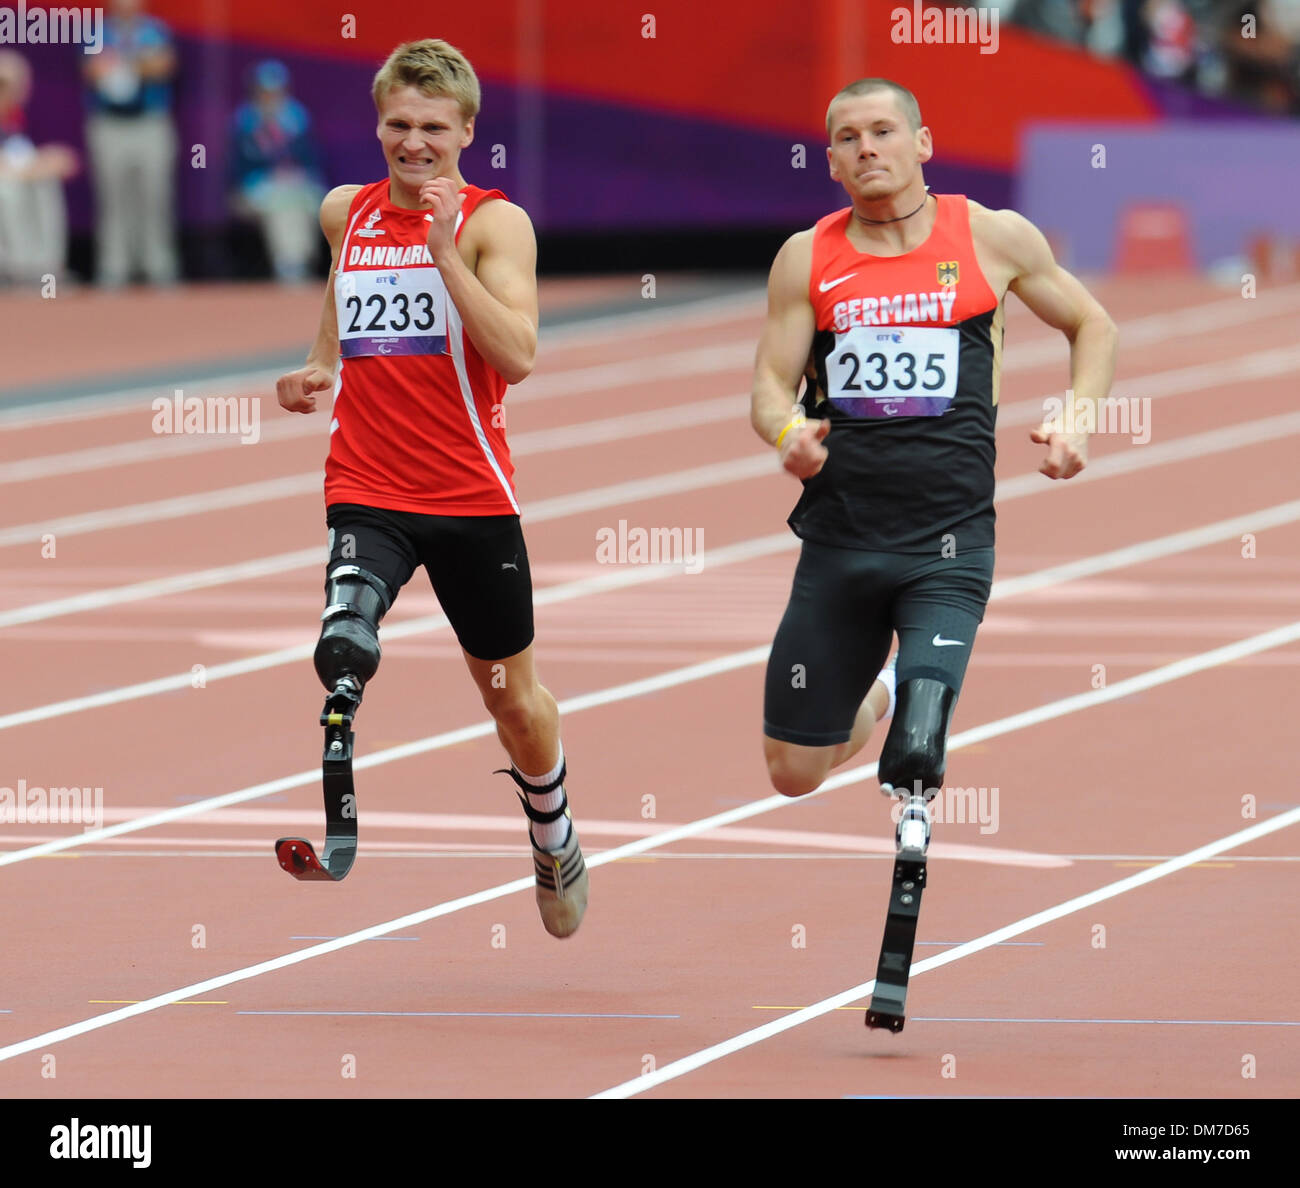 Daniel Jorgensen (Den) and Wojtek Czyz (Ger) London 2012 Paralympic Games - Men's 200m - T42 Final London England Stock Photo